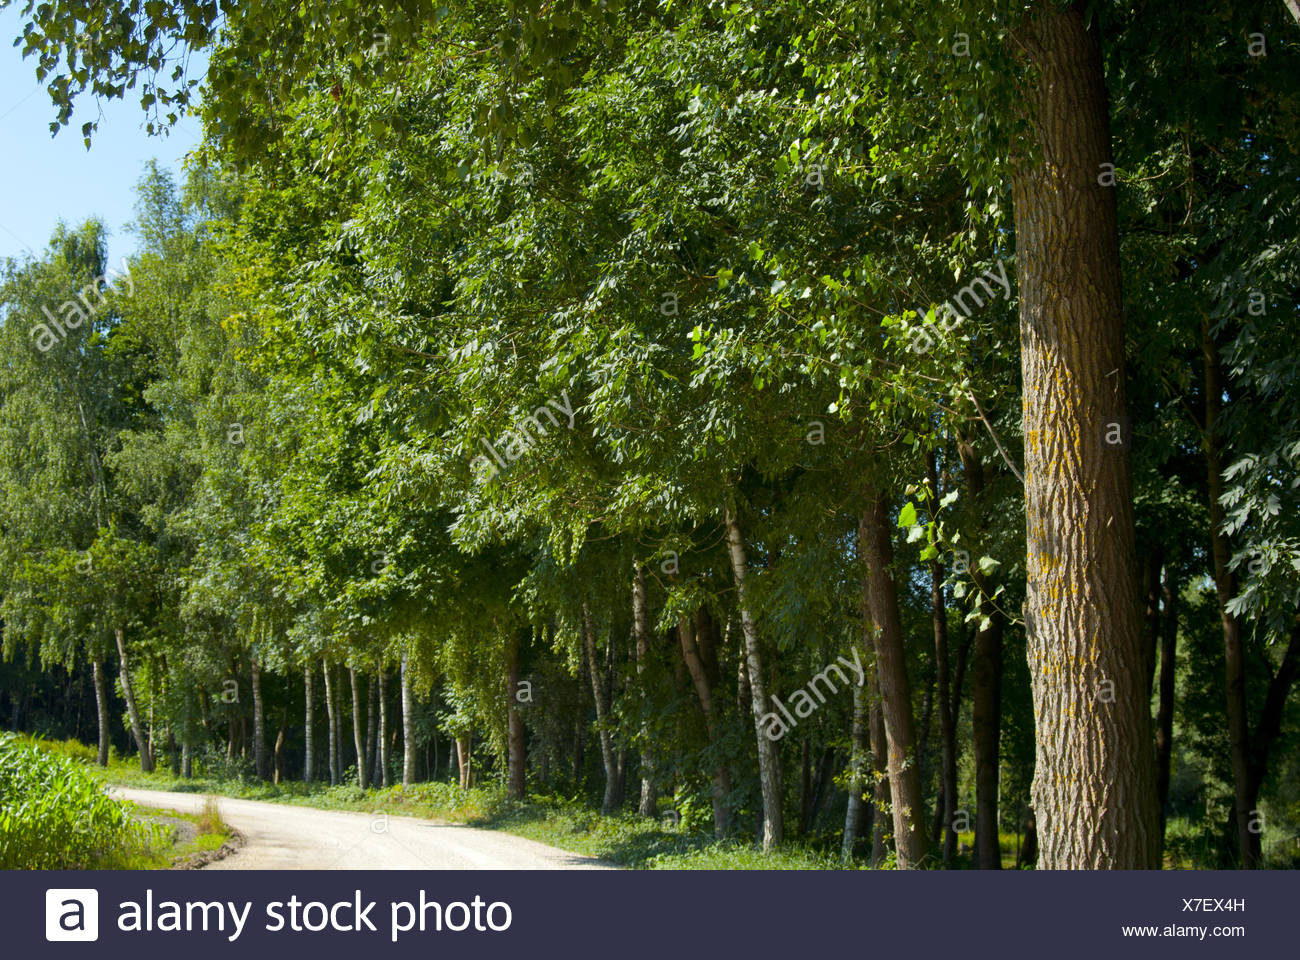 At the forest edge - Stock Image